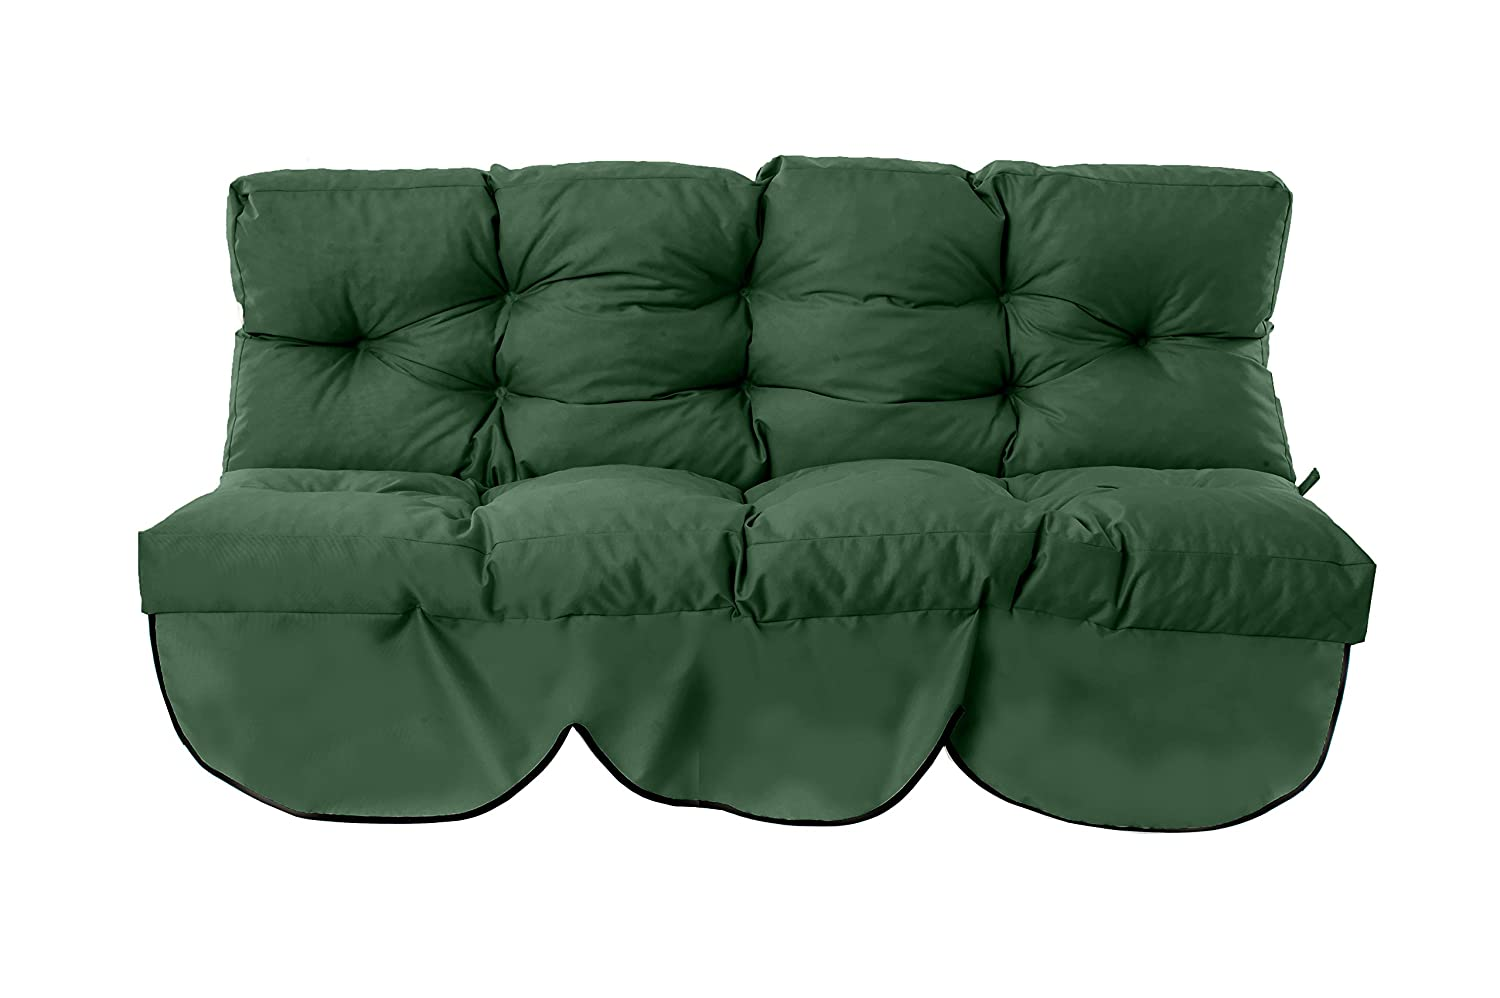 Gardenista Outdoor Garden 2 Seater Swing Cushion in Water Resistant Fabric Ties. Made in the UK. 150x50x7cm - Green.